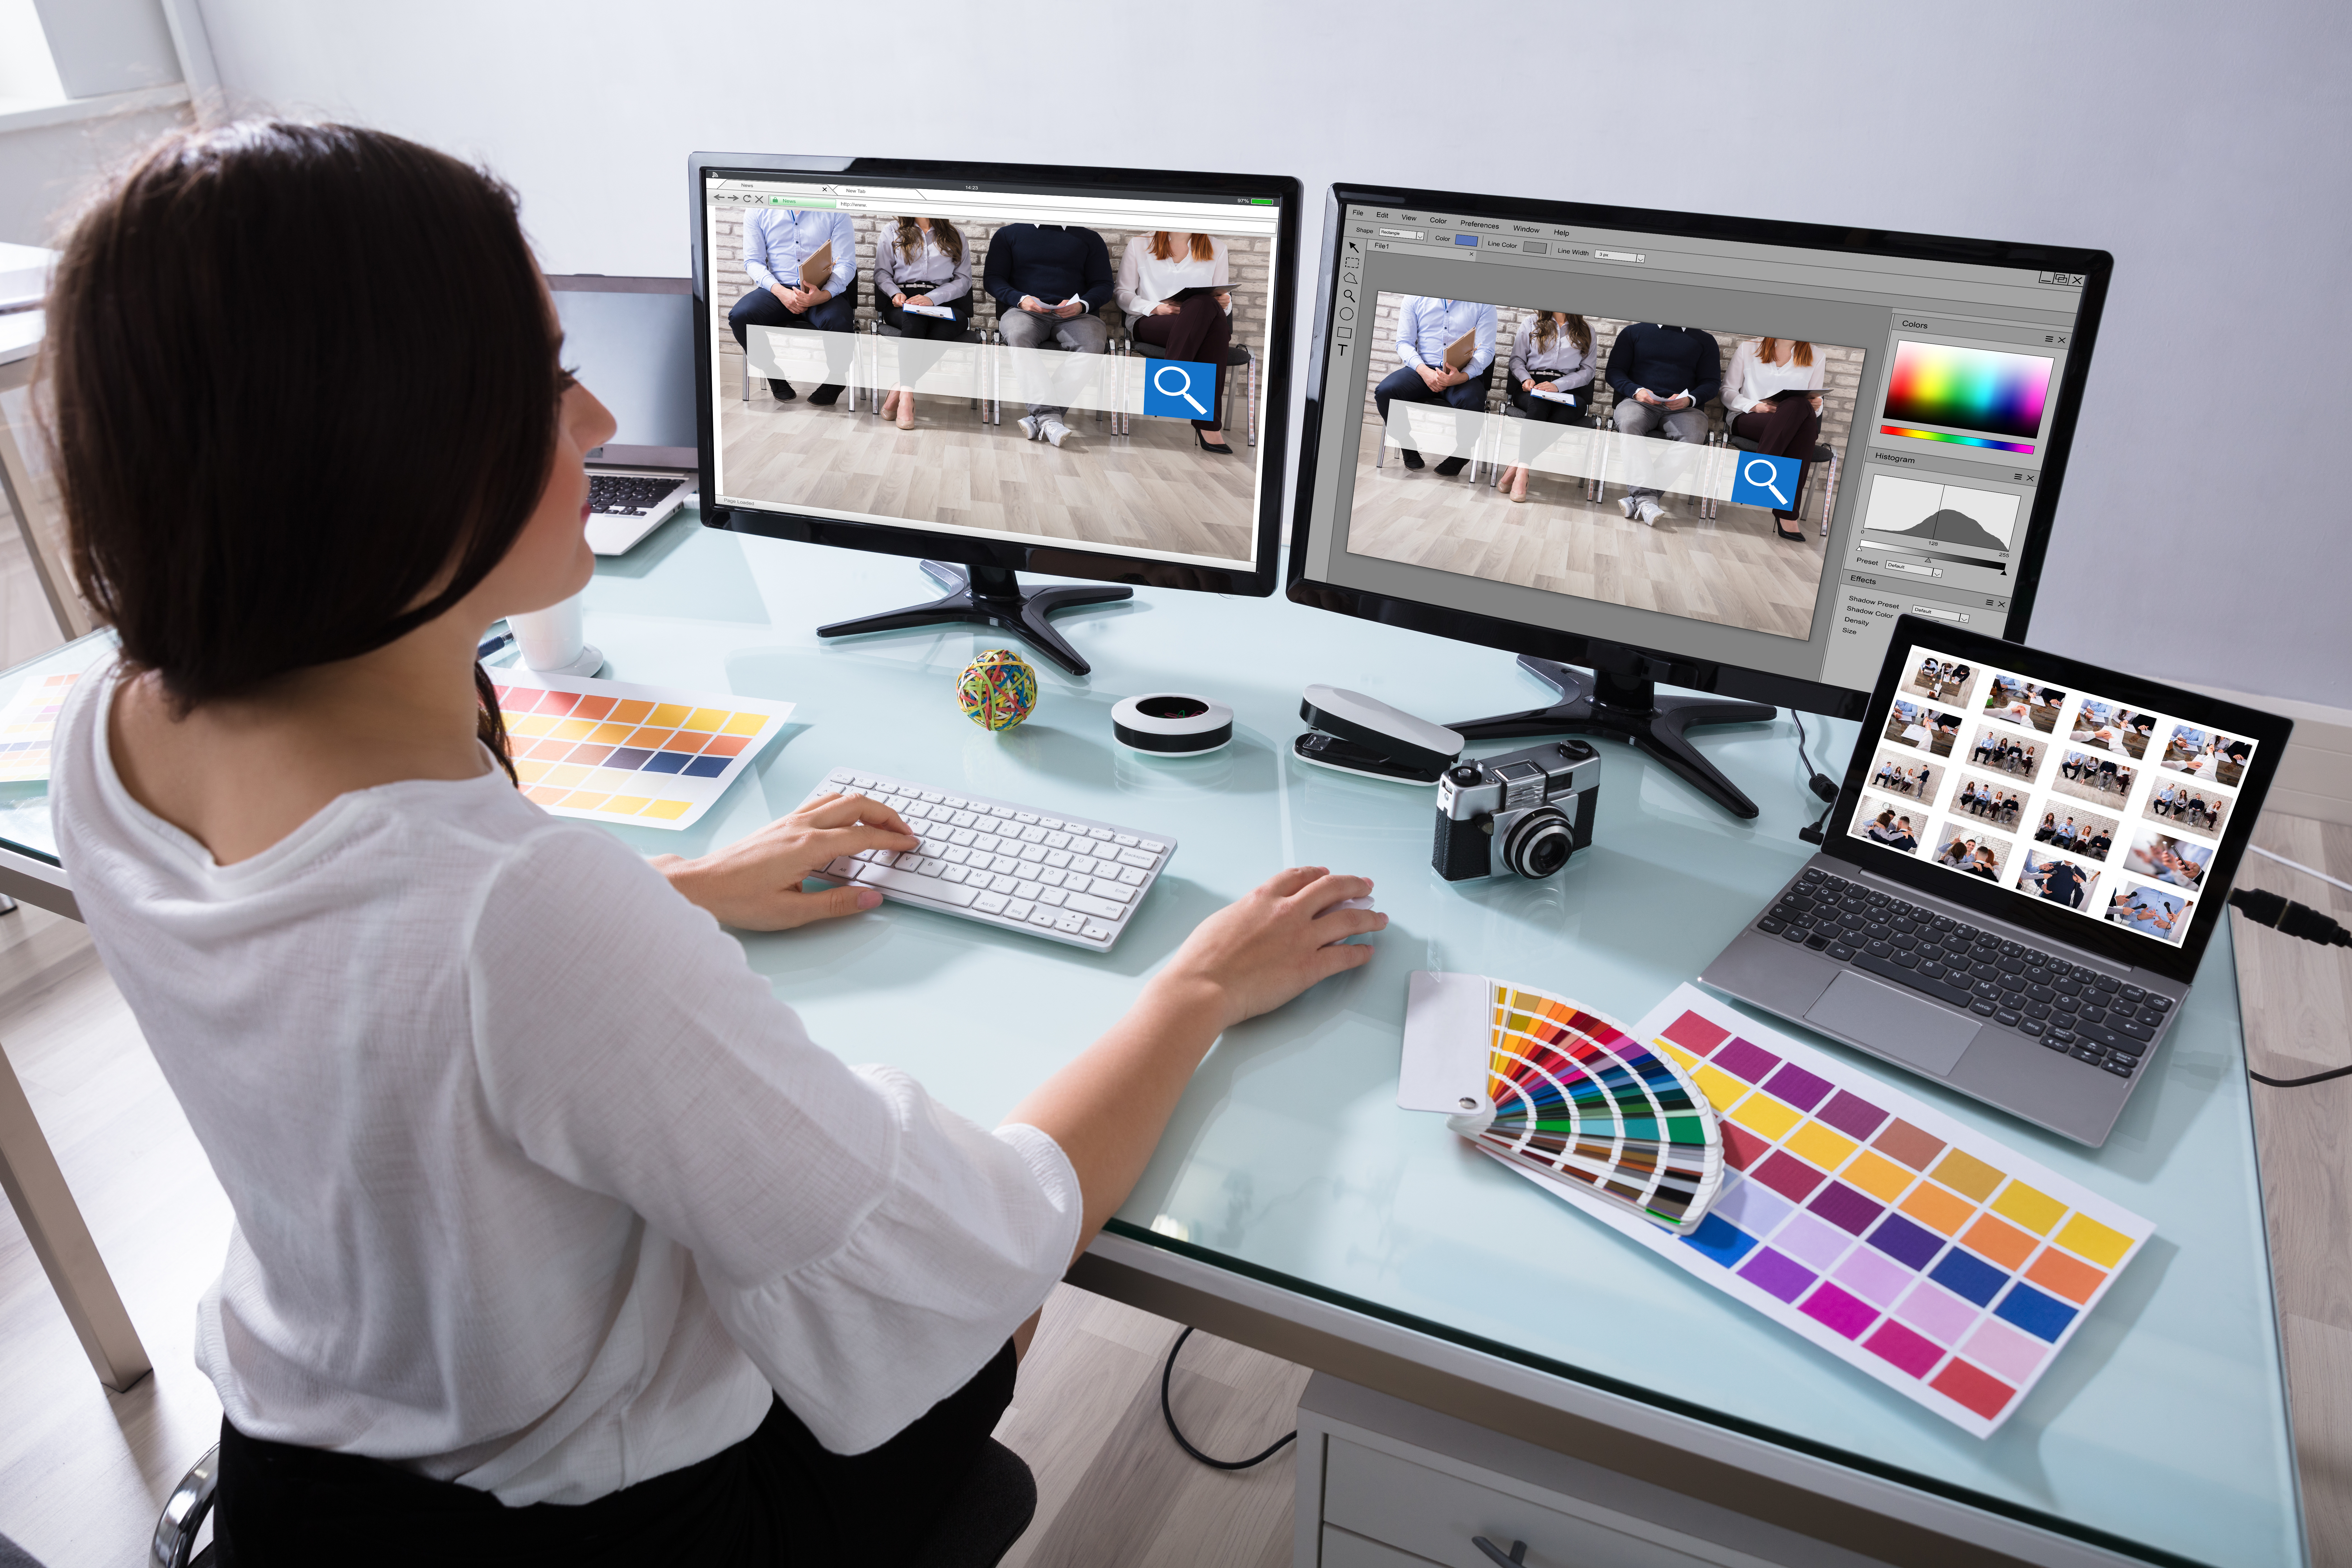 What to Look for When Hiring A Graphic Designer